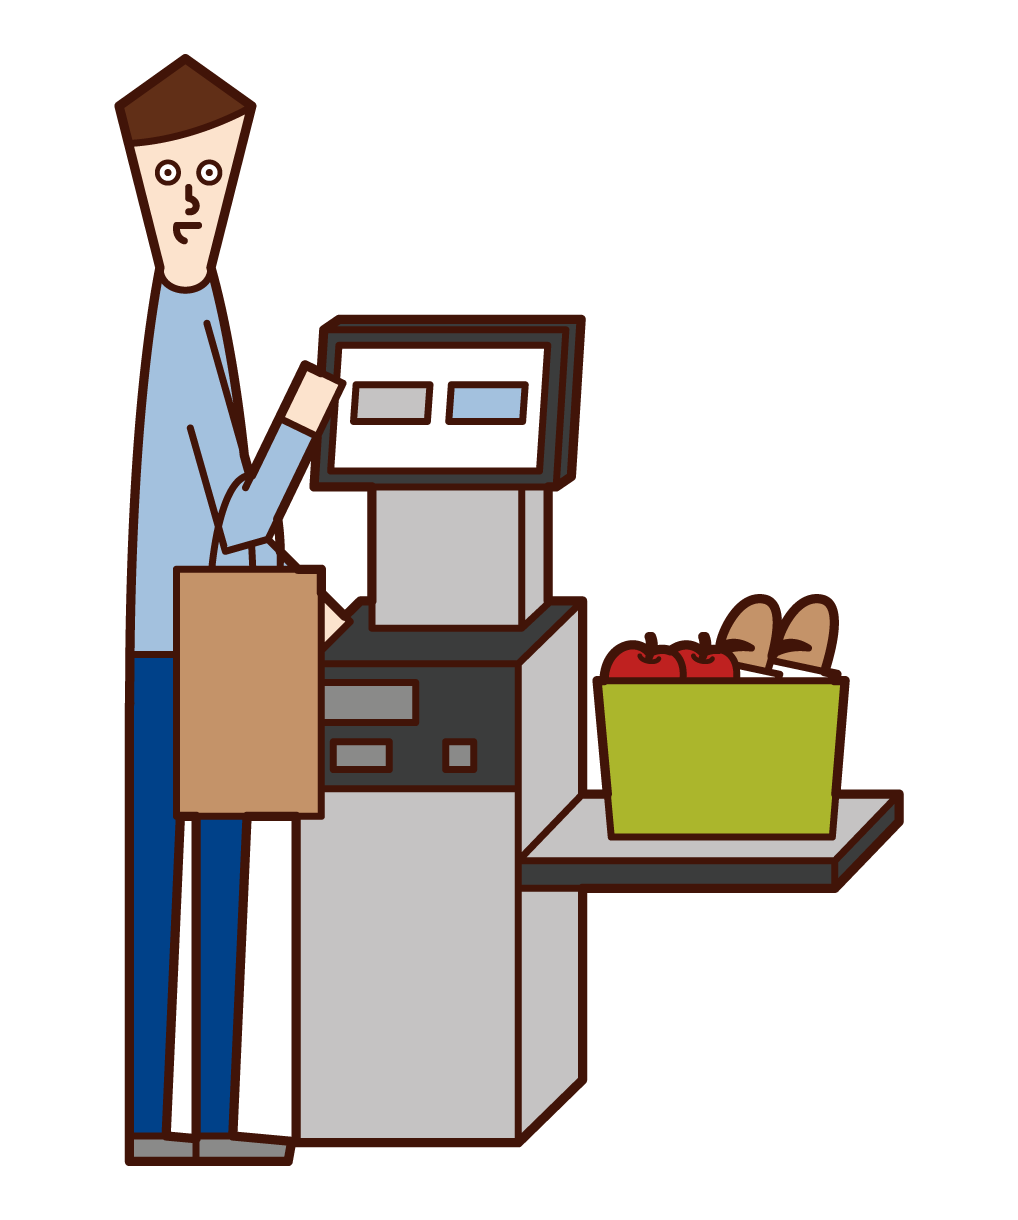 Illustration of a man accounting at a self-register